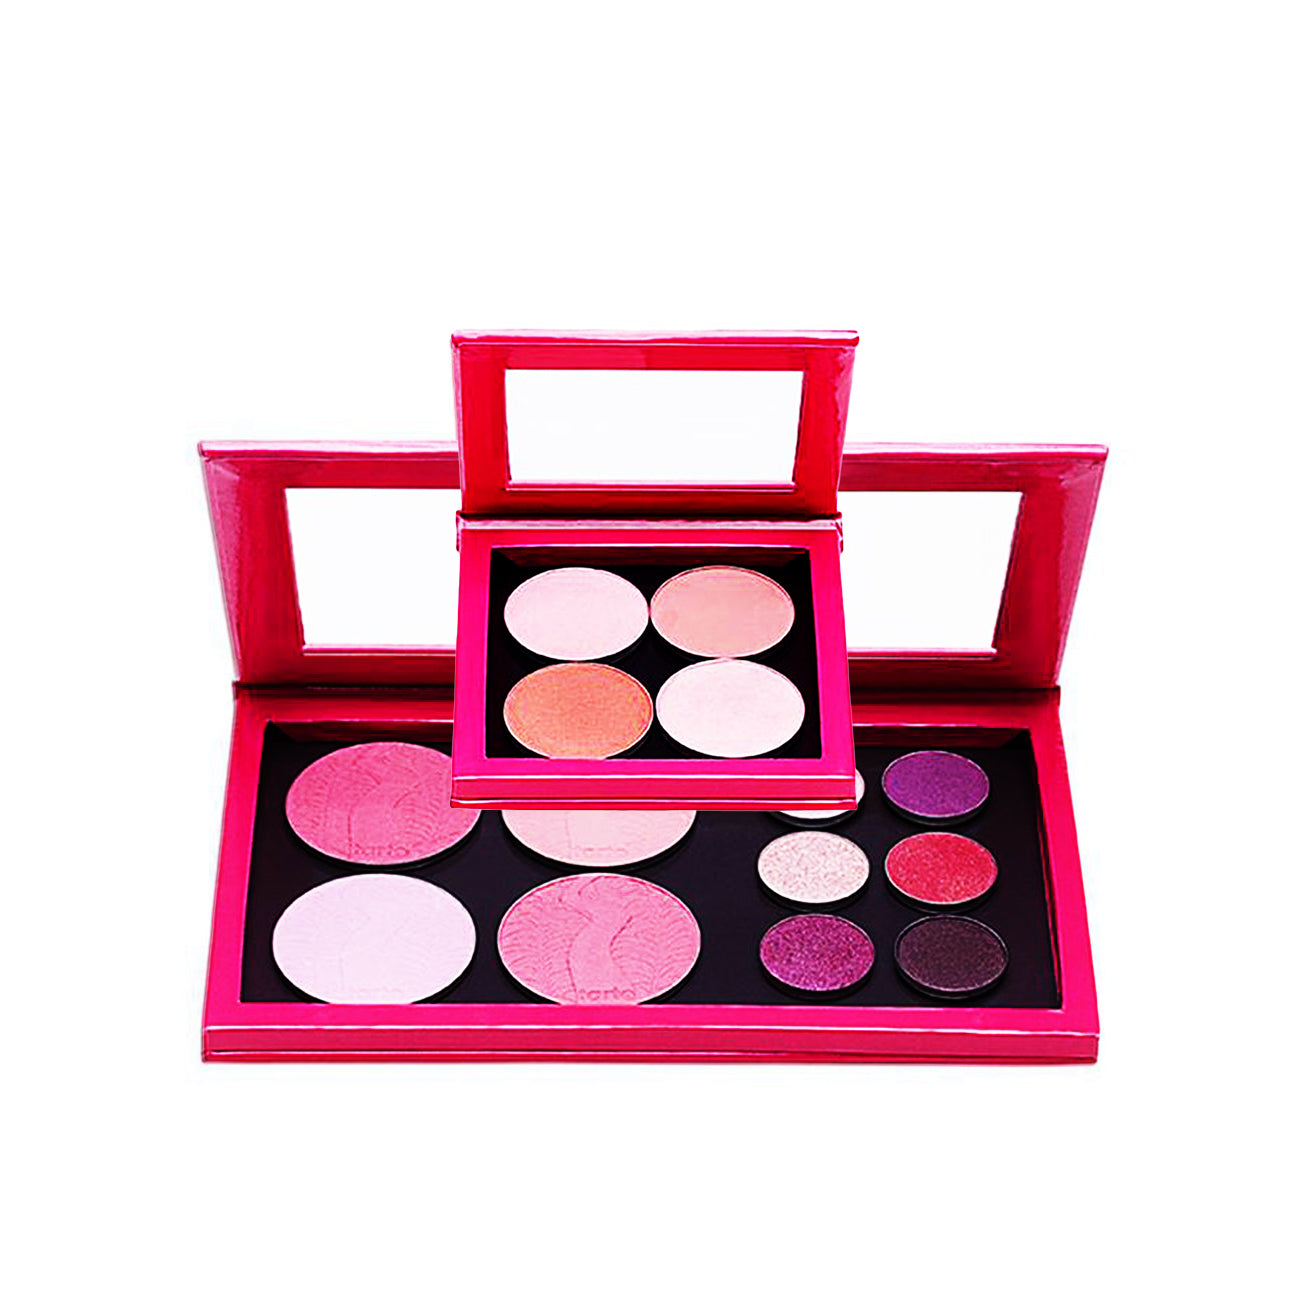 LARGE HOT PINK & SMALL HOT PINK Z PALETTES